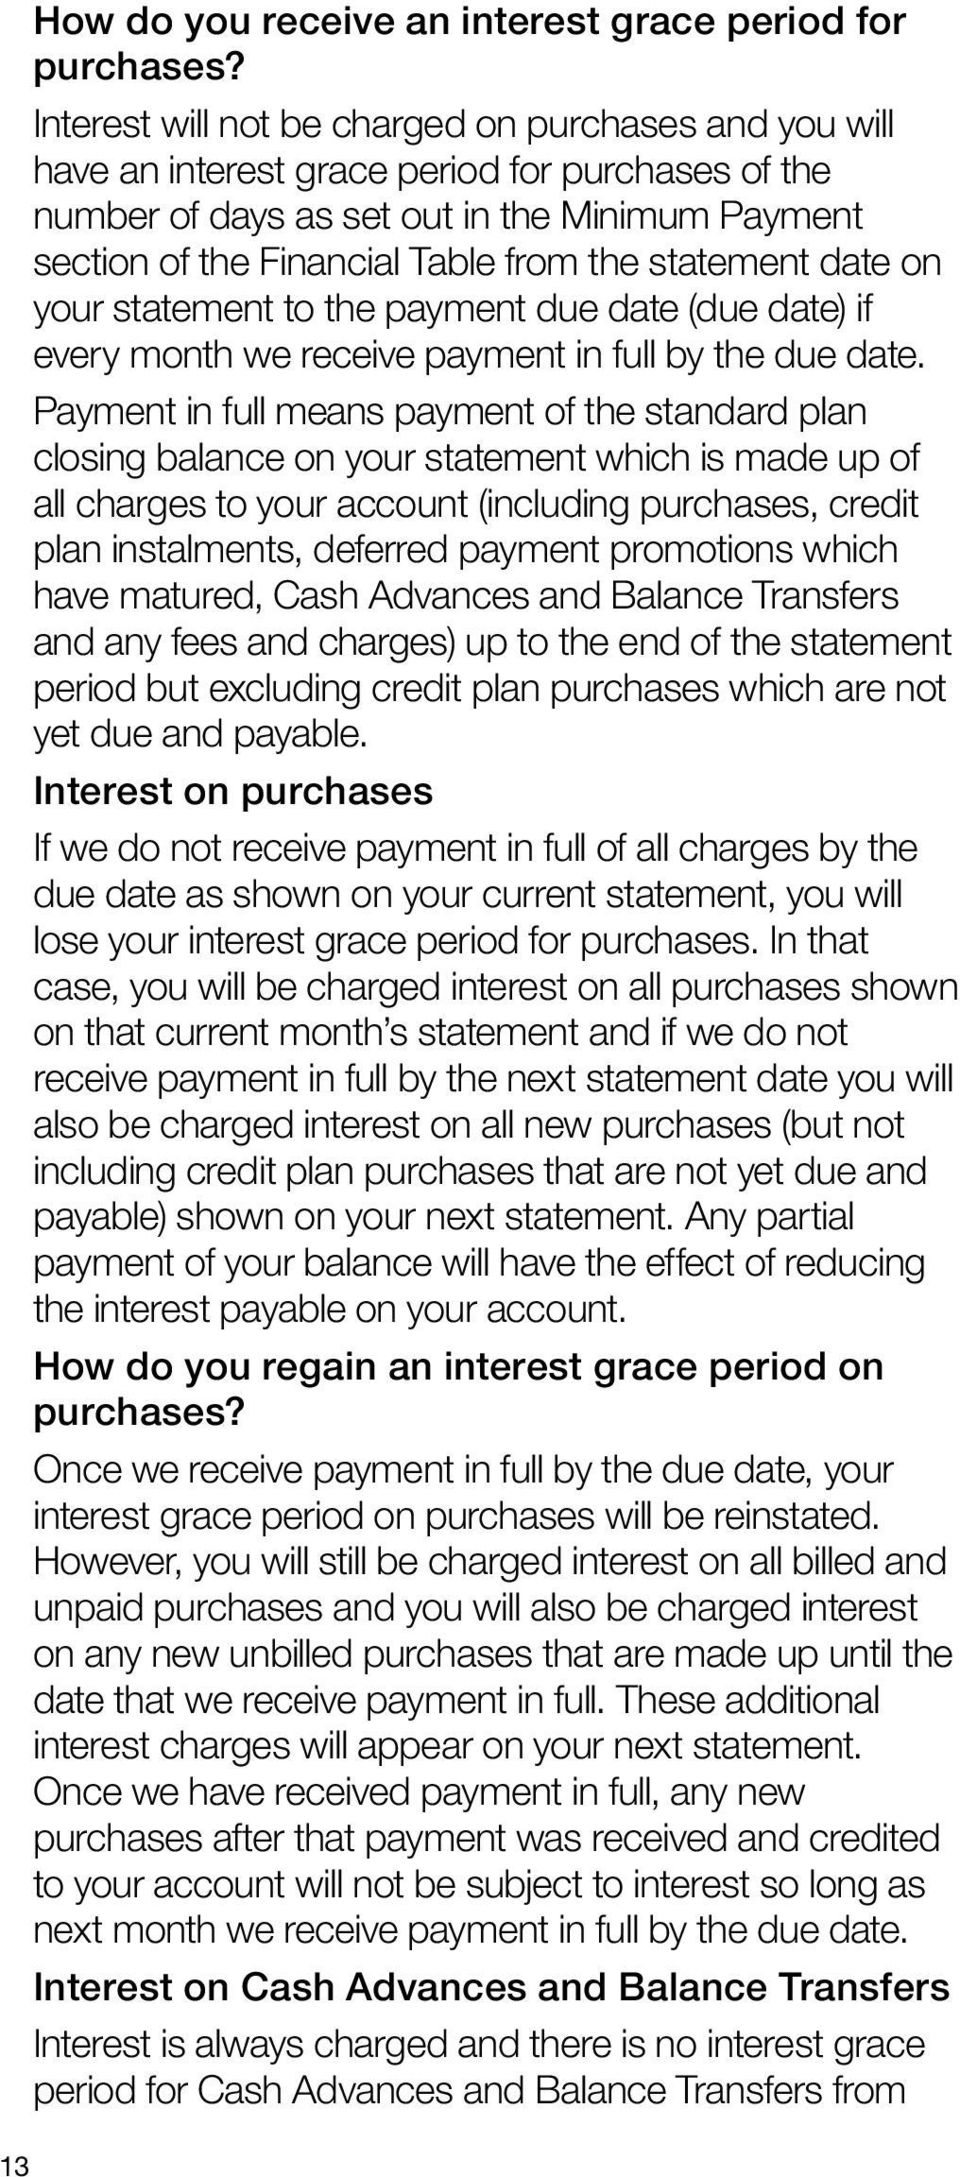 statement date on your statement to the payment due date (due date) if every month we receive payment in full by the due date.